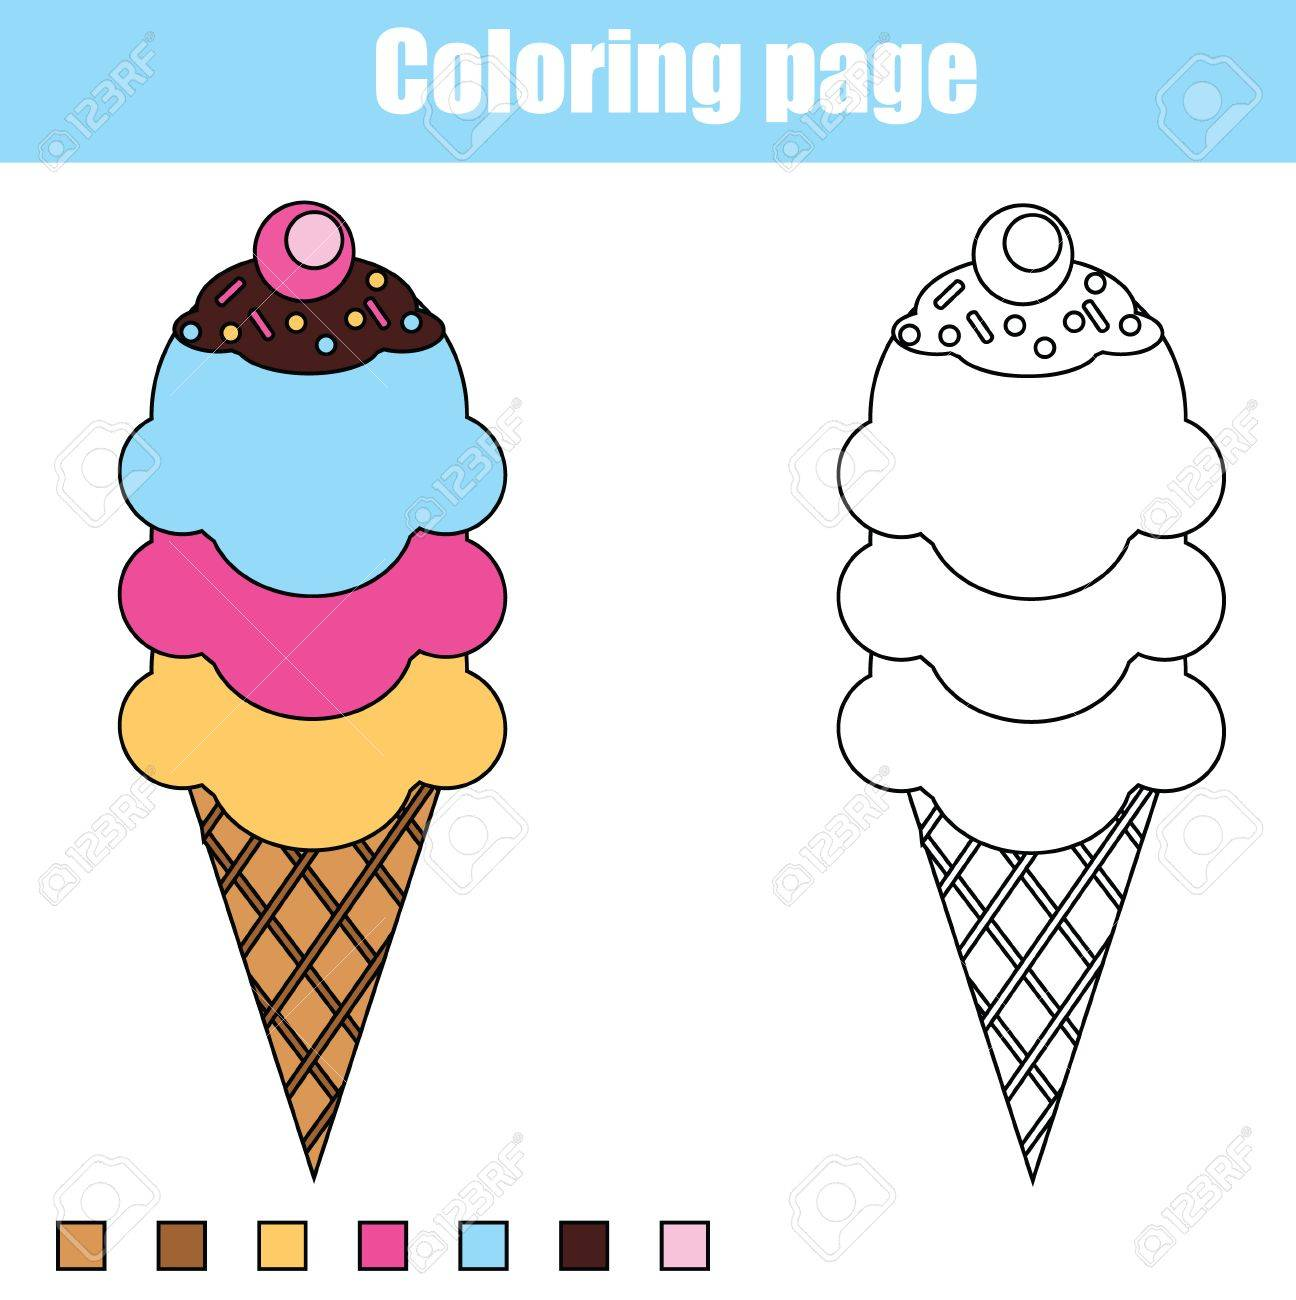 Coloring pictures of ice cream cones - Coloring Page With Ice Cream Cone Color The Ice Cream Drawing Activity Educational Game